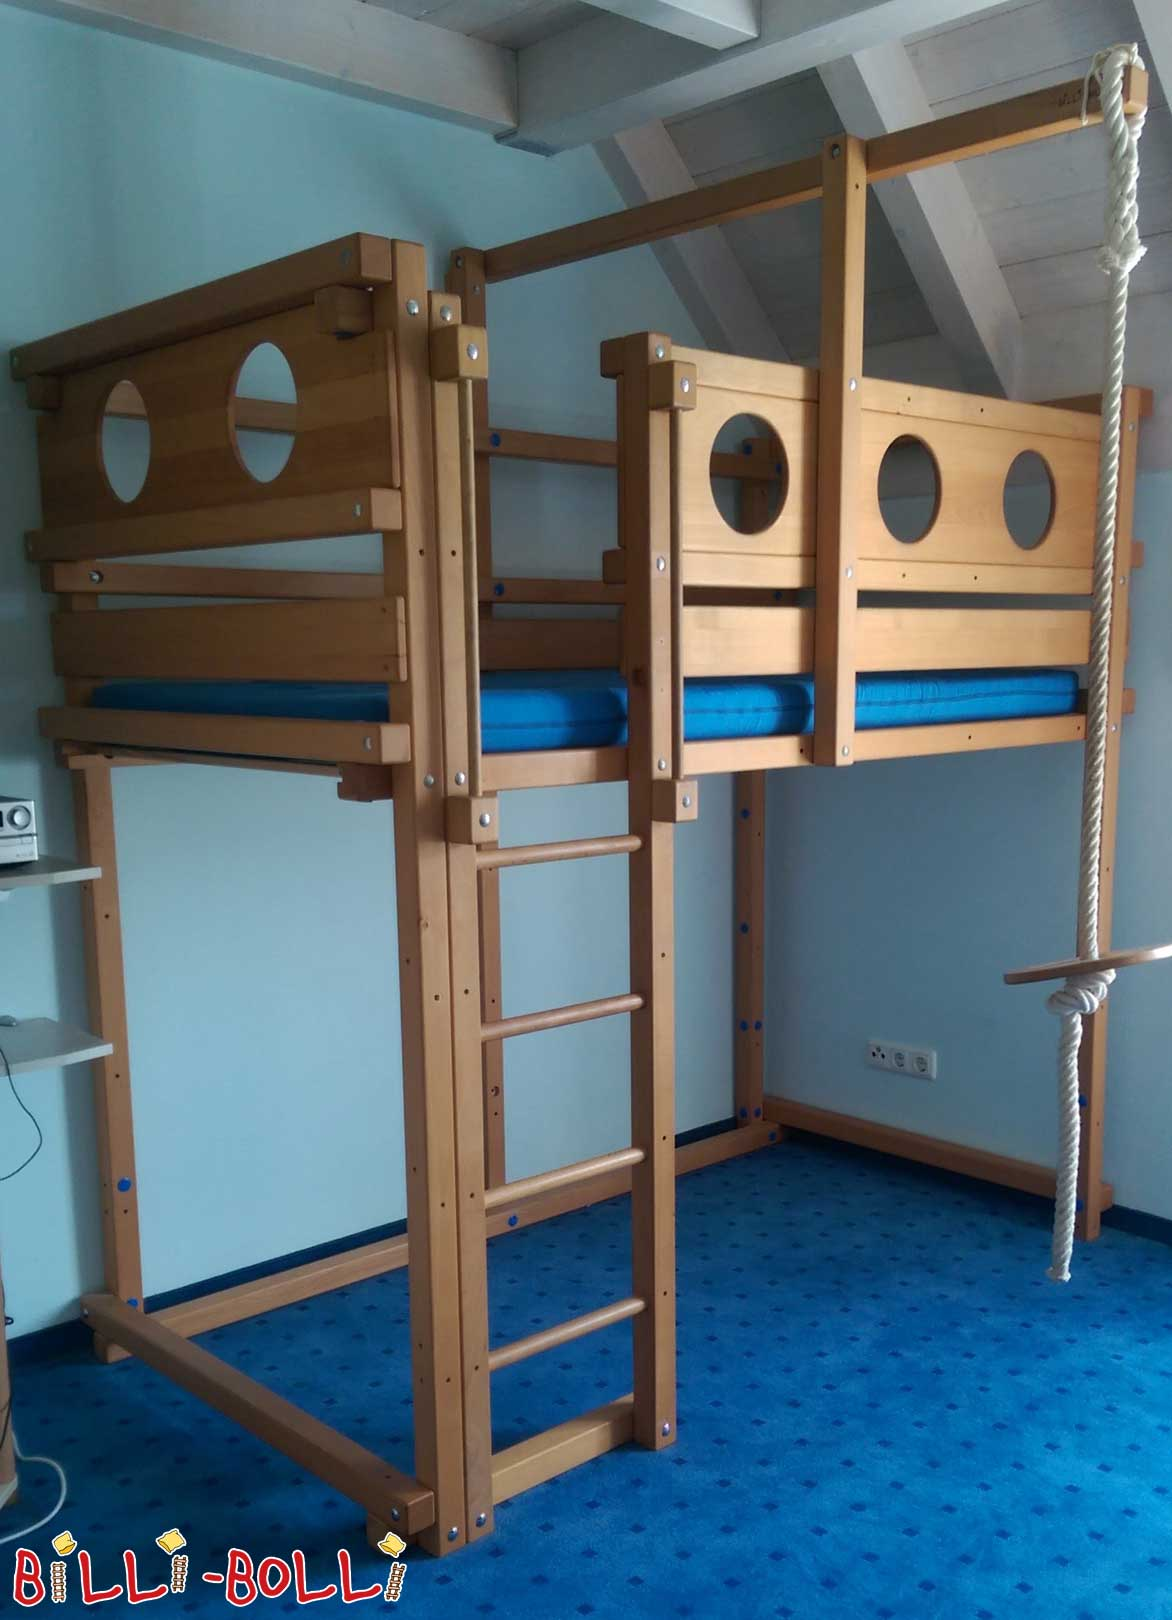 Hochbett 100x200 interesting untreated sparse bunk bed x for Hochbett mitwachsend